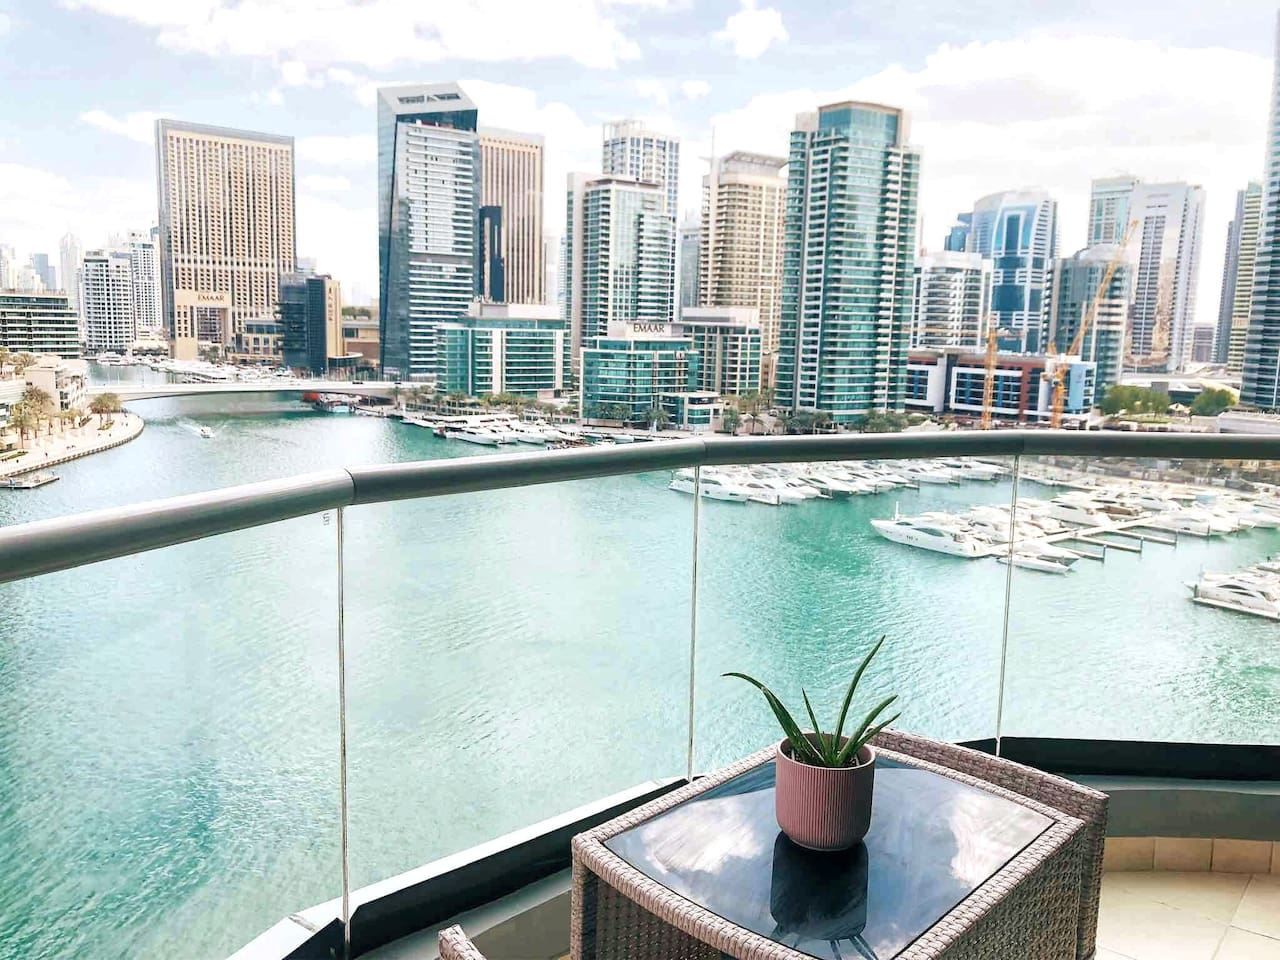 The view from our balcony. A perfect way to wake up every morning and enjoy your coffee/tea. It's such a relaxing feeling to watch the boats and waves outside.  WELCOME TO LOS DUBAI!